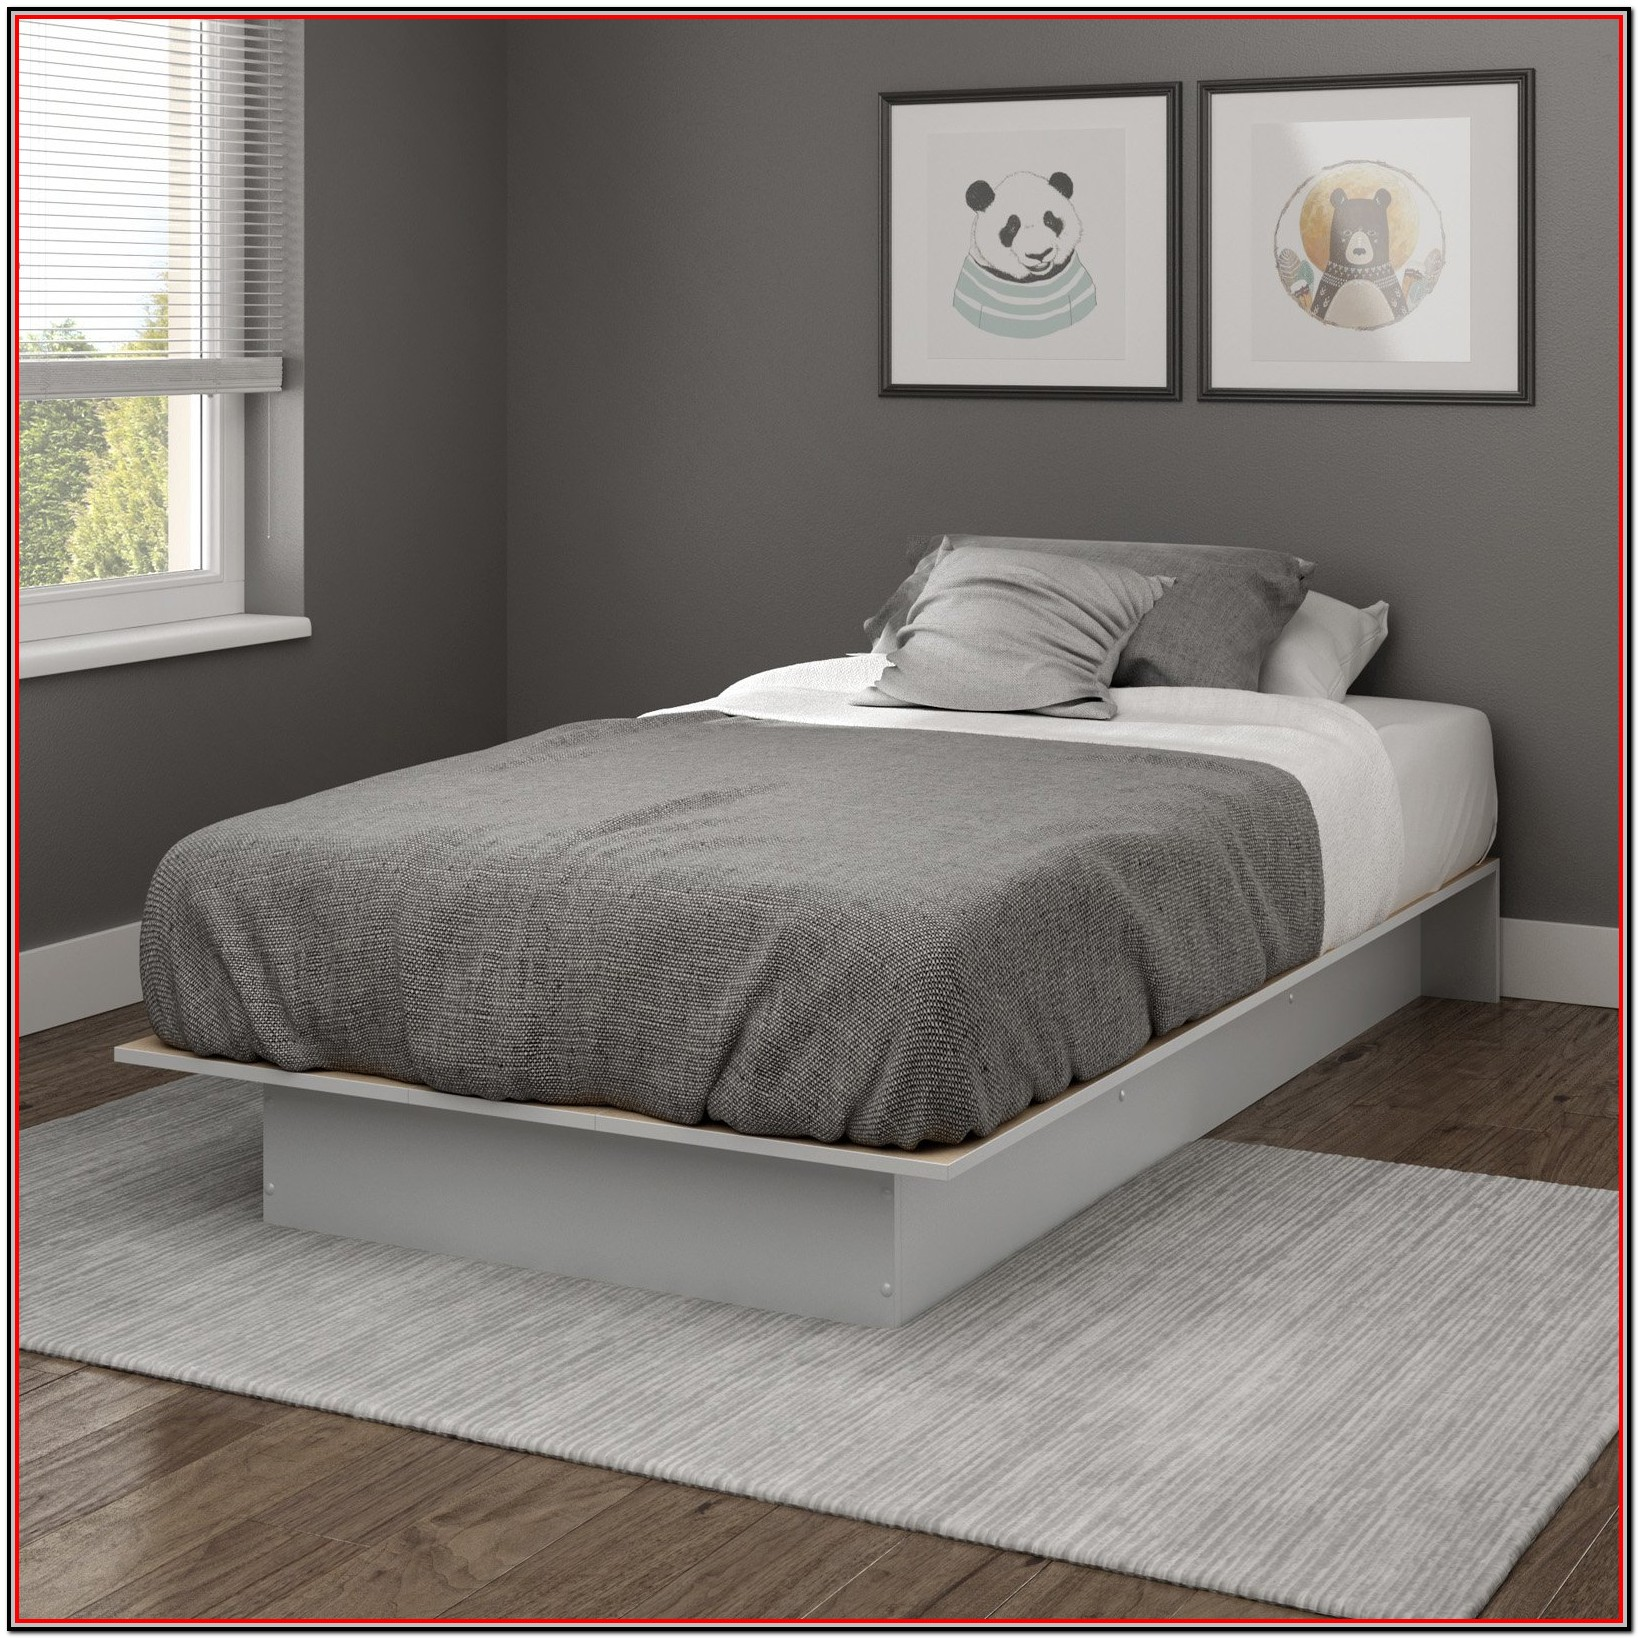 South Shore Smart Basics Twin Platform Bed 39'' Multiple Finishes